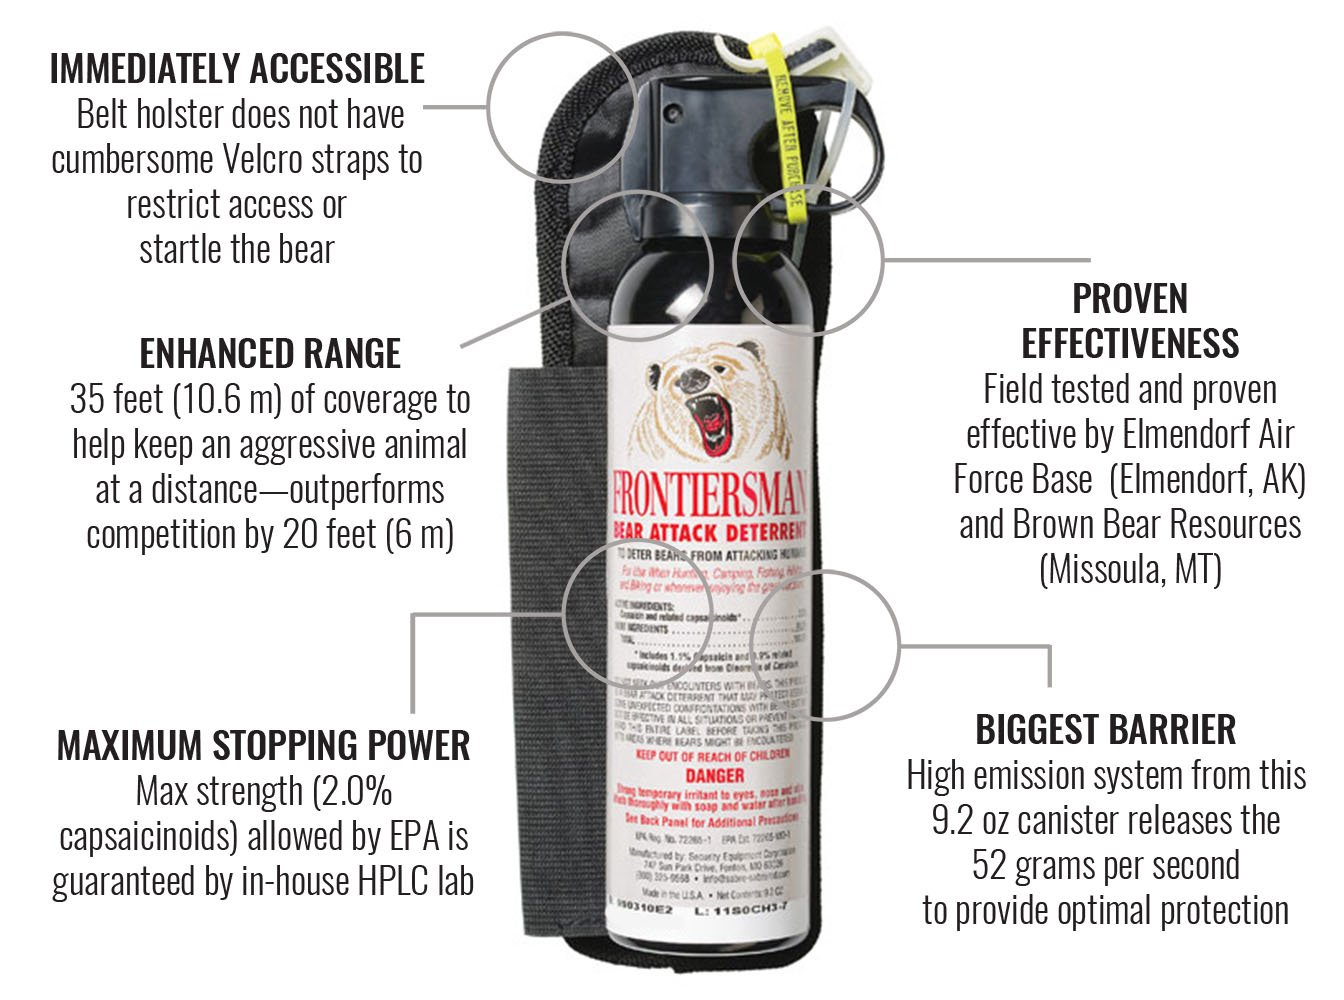 Frontiersman Bear Spray with Chest or Belt Holster– Easy Access, Max Strength - 9.2 oz -Industry Max 35-Foot Range